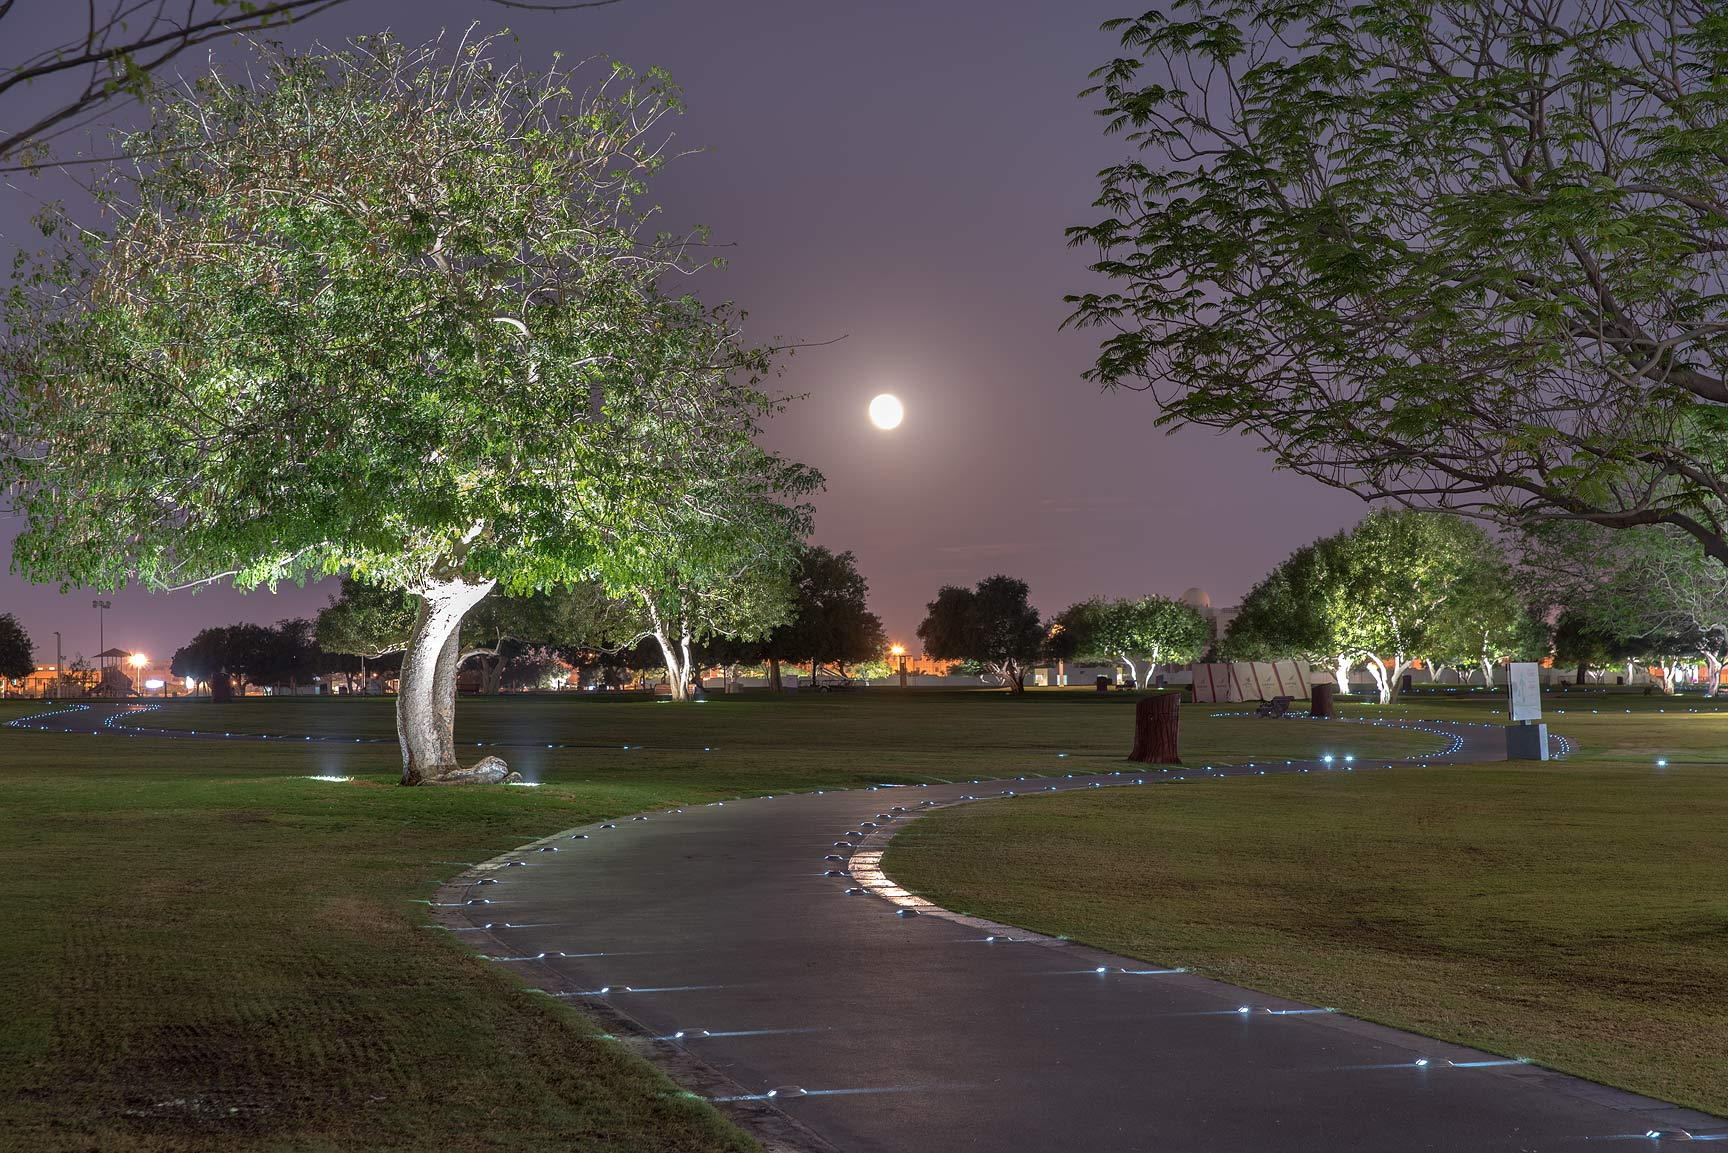 Moonlit pathway in Aspire Park. Doha, Qatar